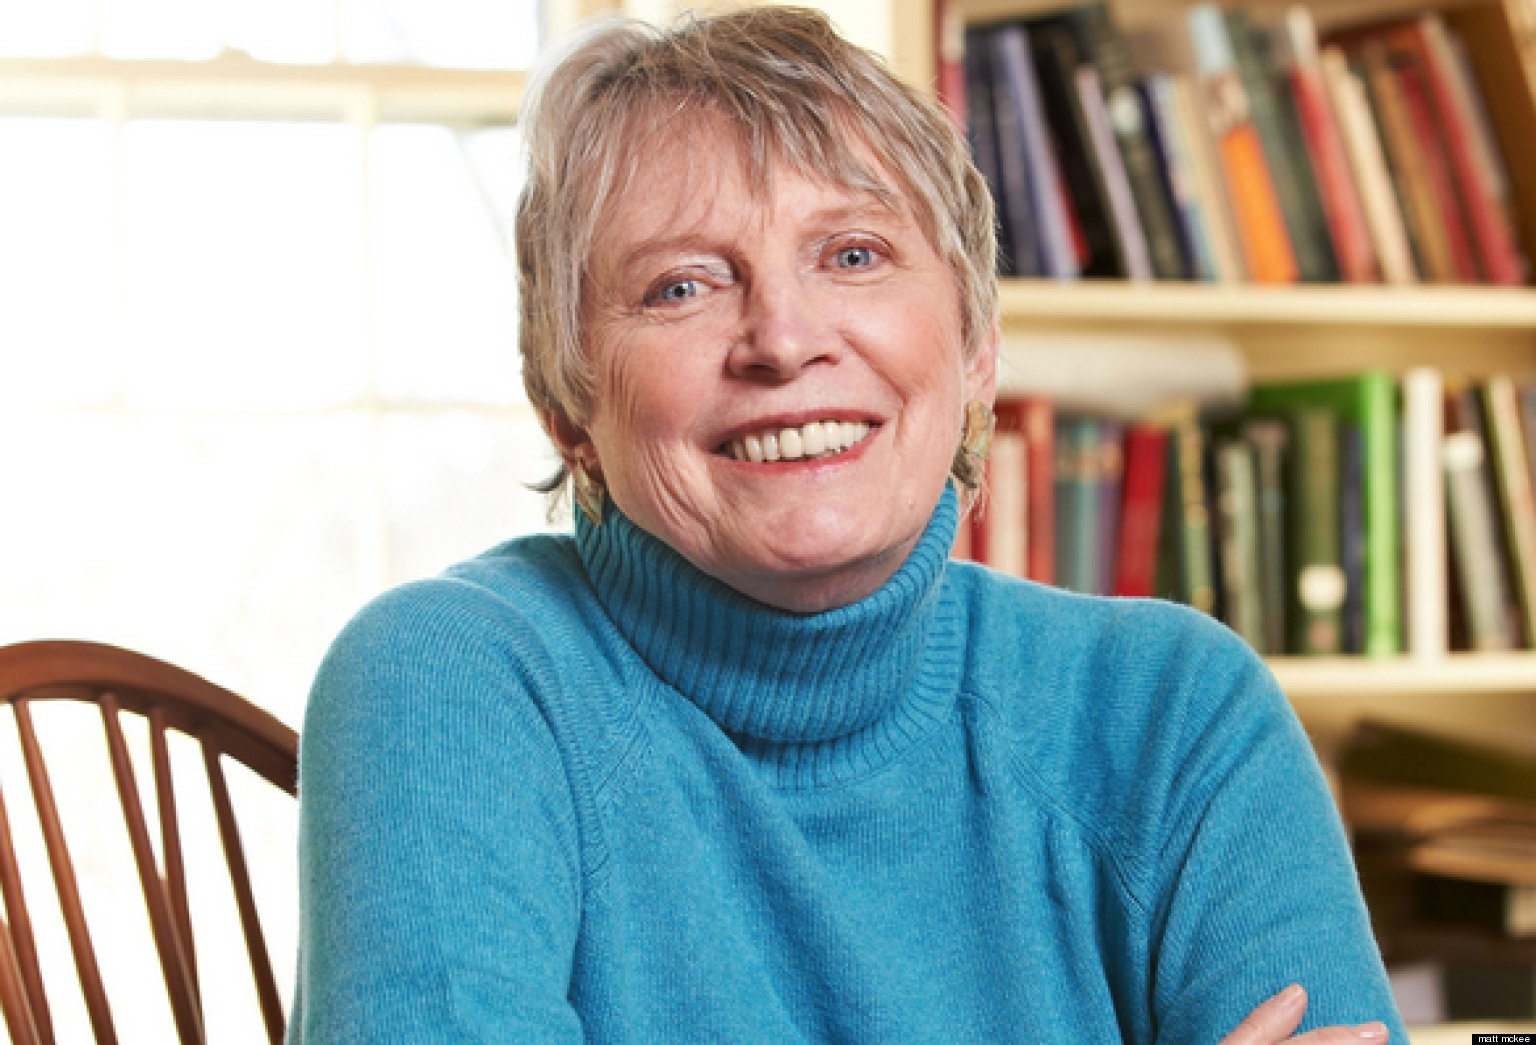 Lois Lowry Son And The Giver Author Reflects On